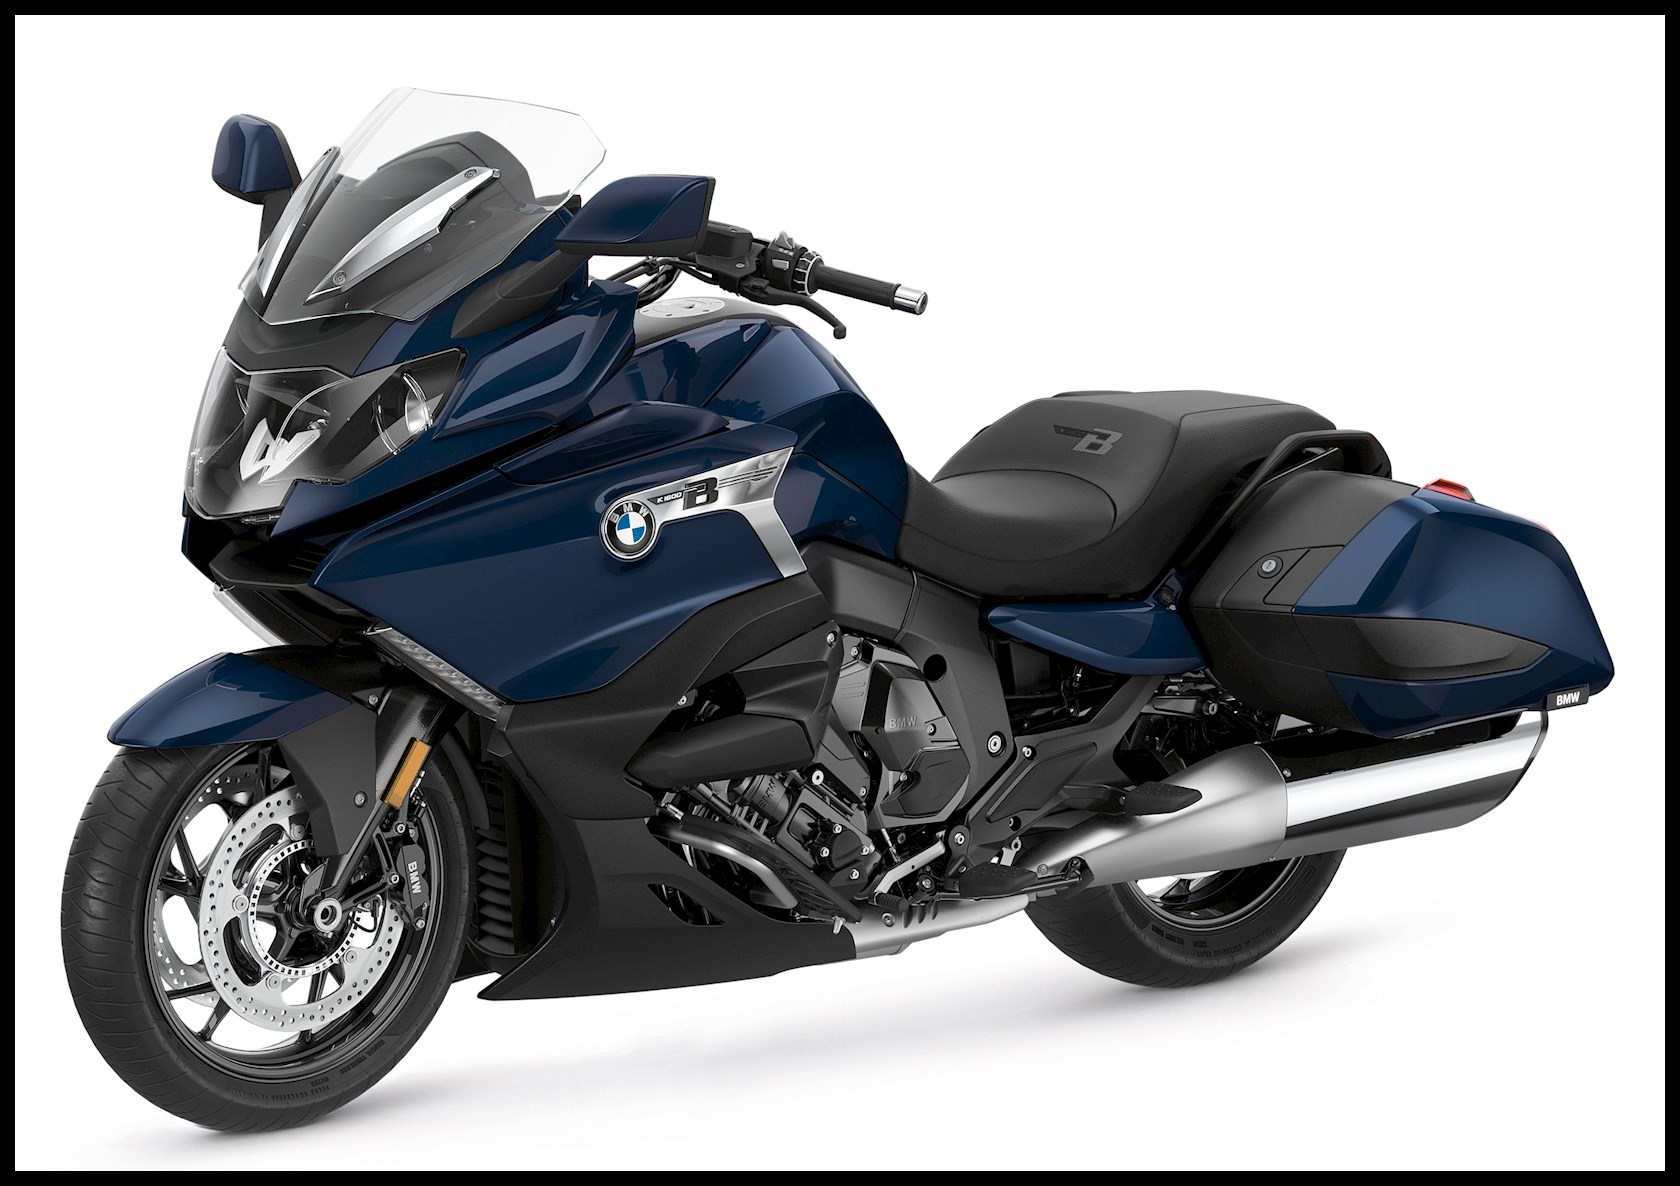 The 2017 BMW K1600B is a premium touring bike with all the toys It s powered by a 1 649cc inline 6 engine which puts out 158bhp